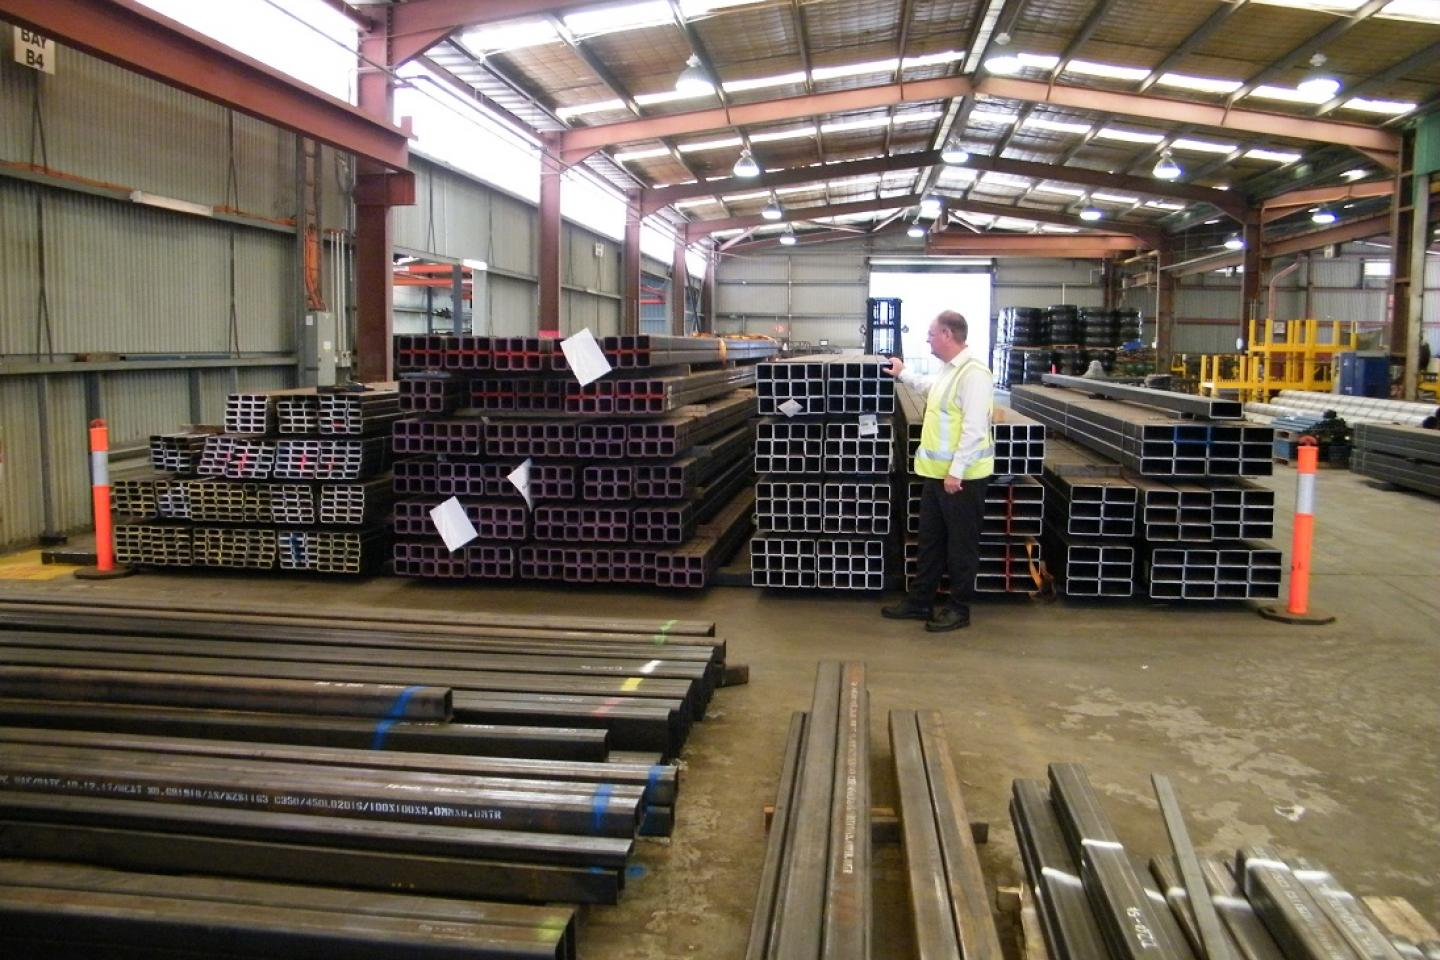 Ausplow general manager Chris Farmer checks over the latest delivery of steel at the company's Naval Base factory this week. An astute ordering move means there will be no price increases related to imminent price rises in steel.